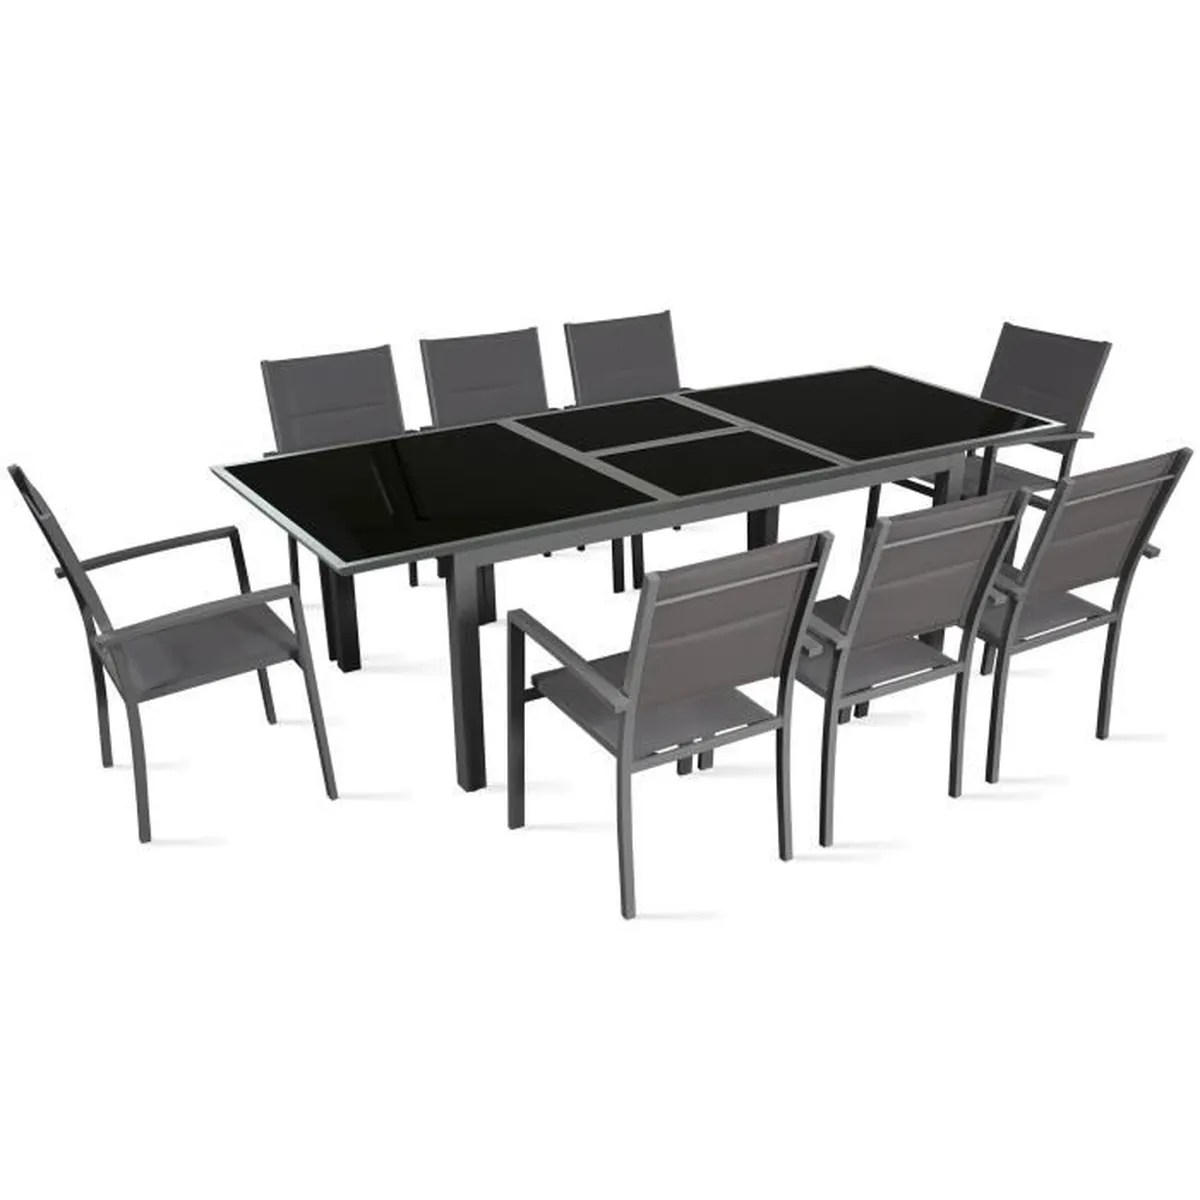 Happy Garden Salon De Jardin Table De Jardin 12 Personnes Achat Vente Table De